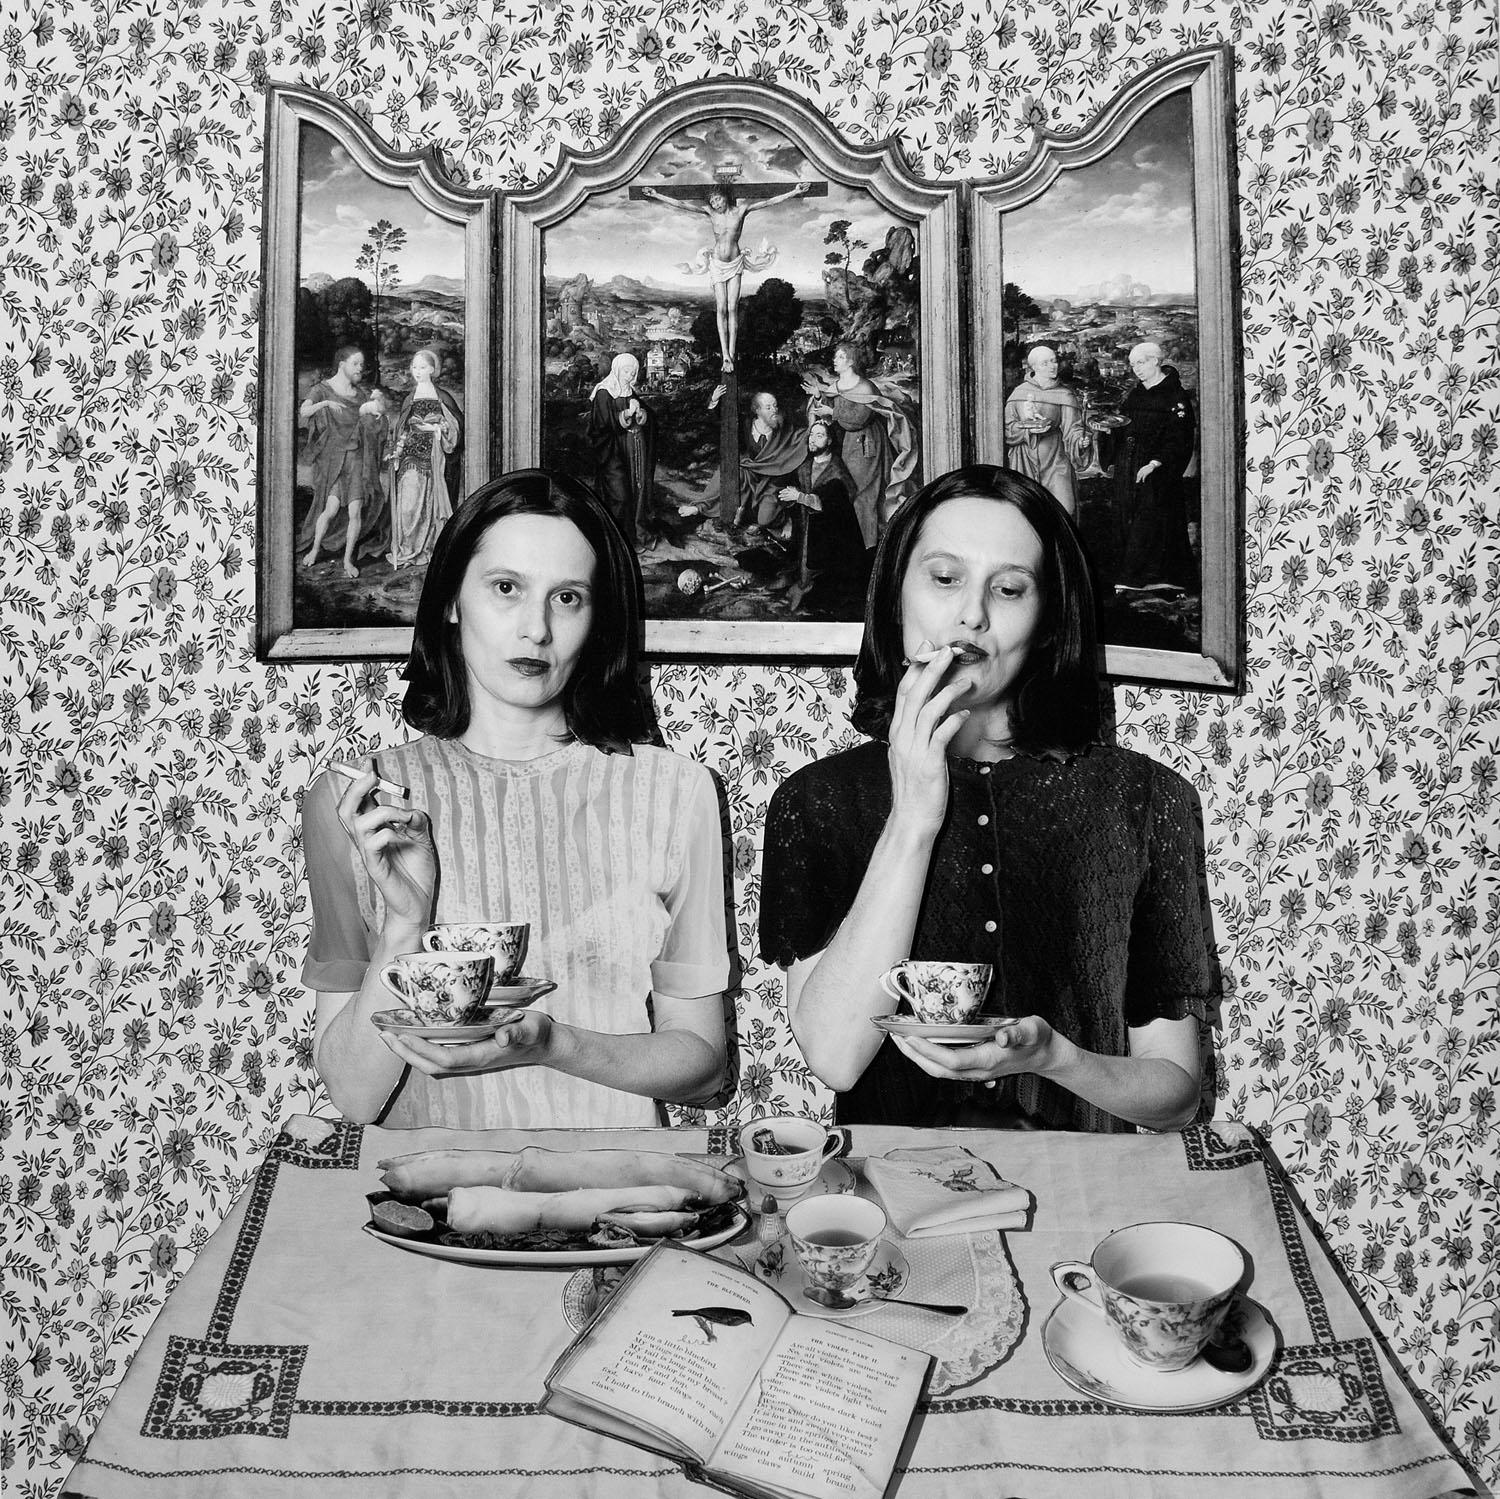 A photograph by Cornelia Hediger from the Puppenhaus series.